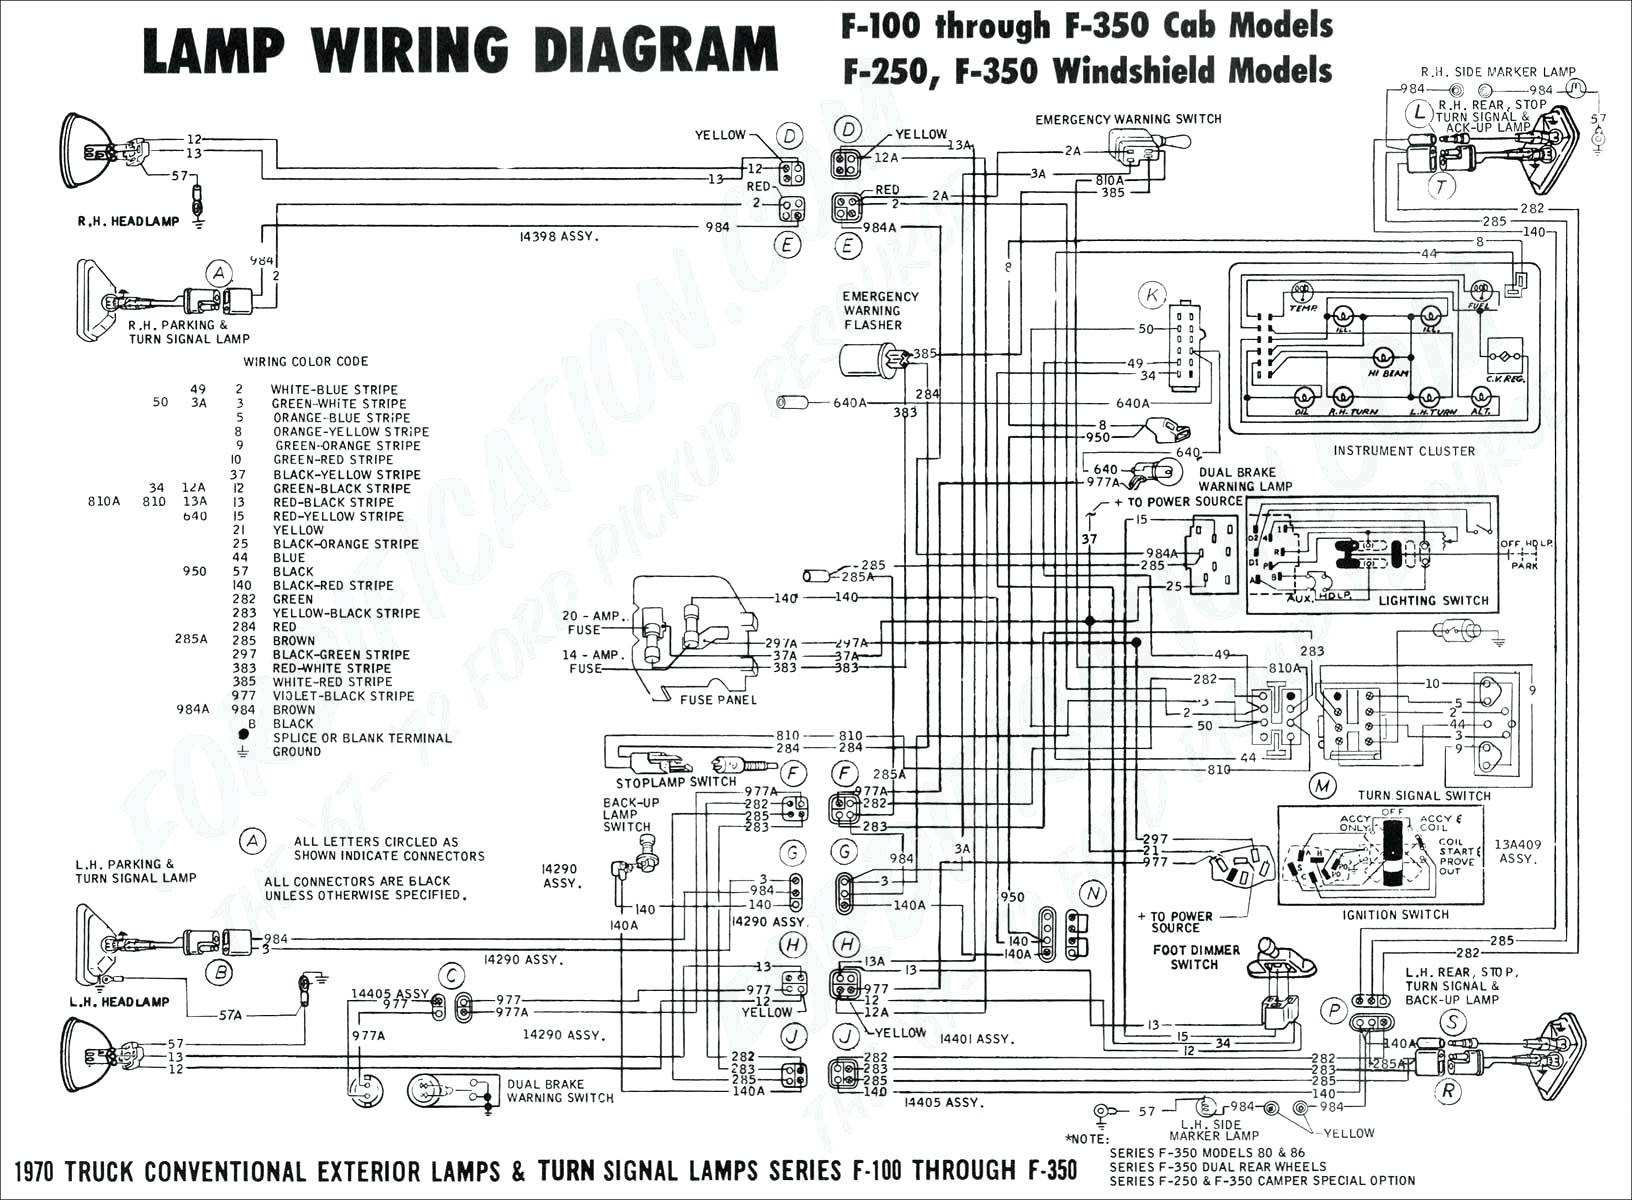 1996 Chevy S10 Wiring Diagram 1997 Chevy S10 Wiring Diagram Collection Of 1996 Chevy S10 Wiring Diagram Ignition Switch Wiring Diagram 2001 Blazer Valid 1996 Chevy Blazer